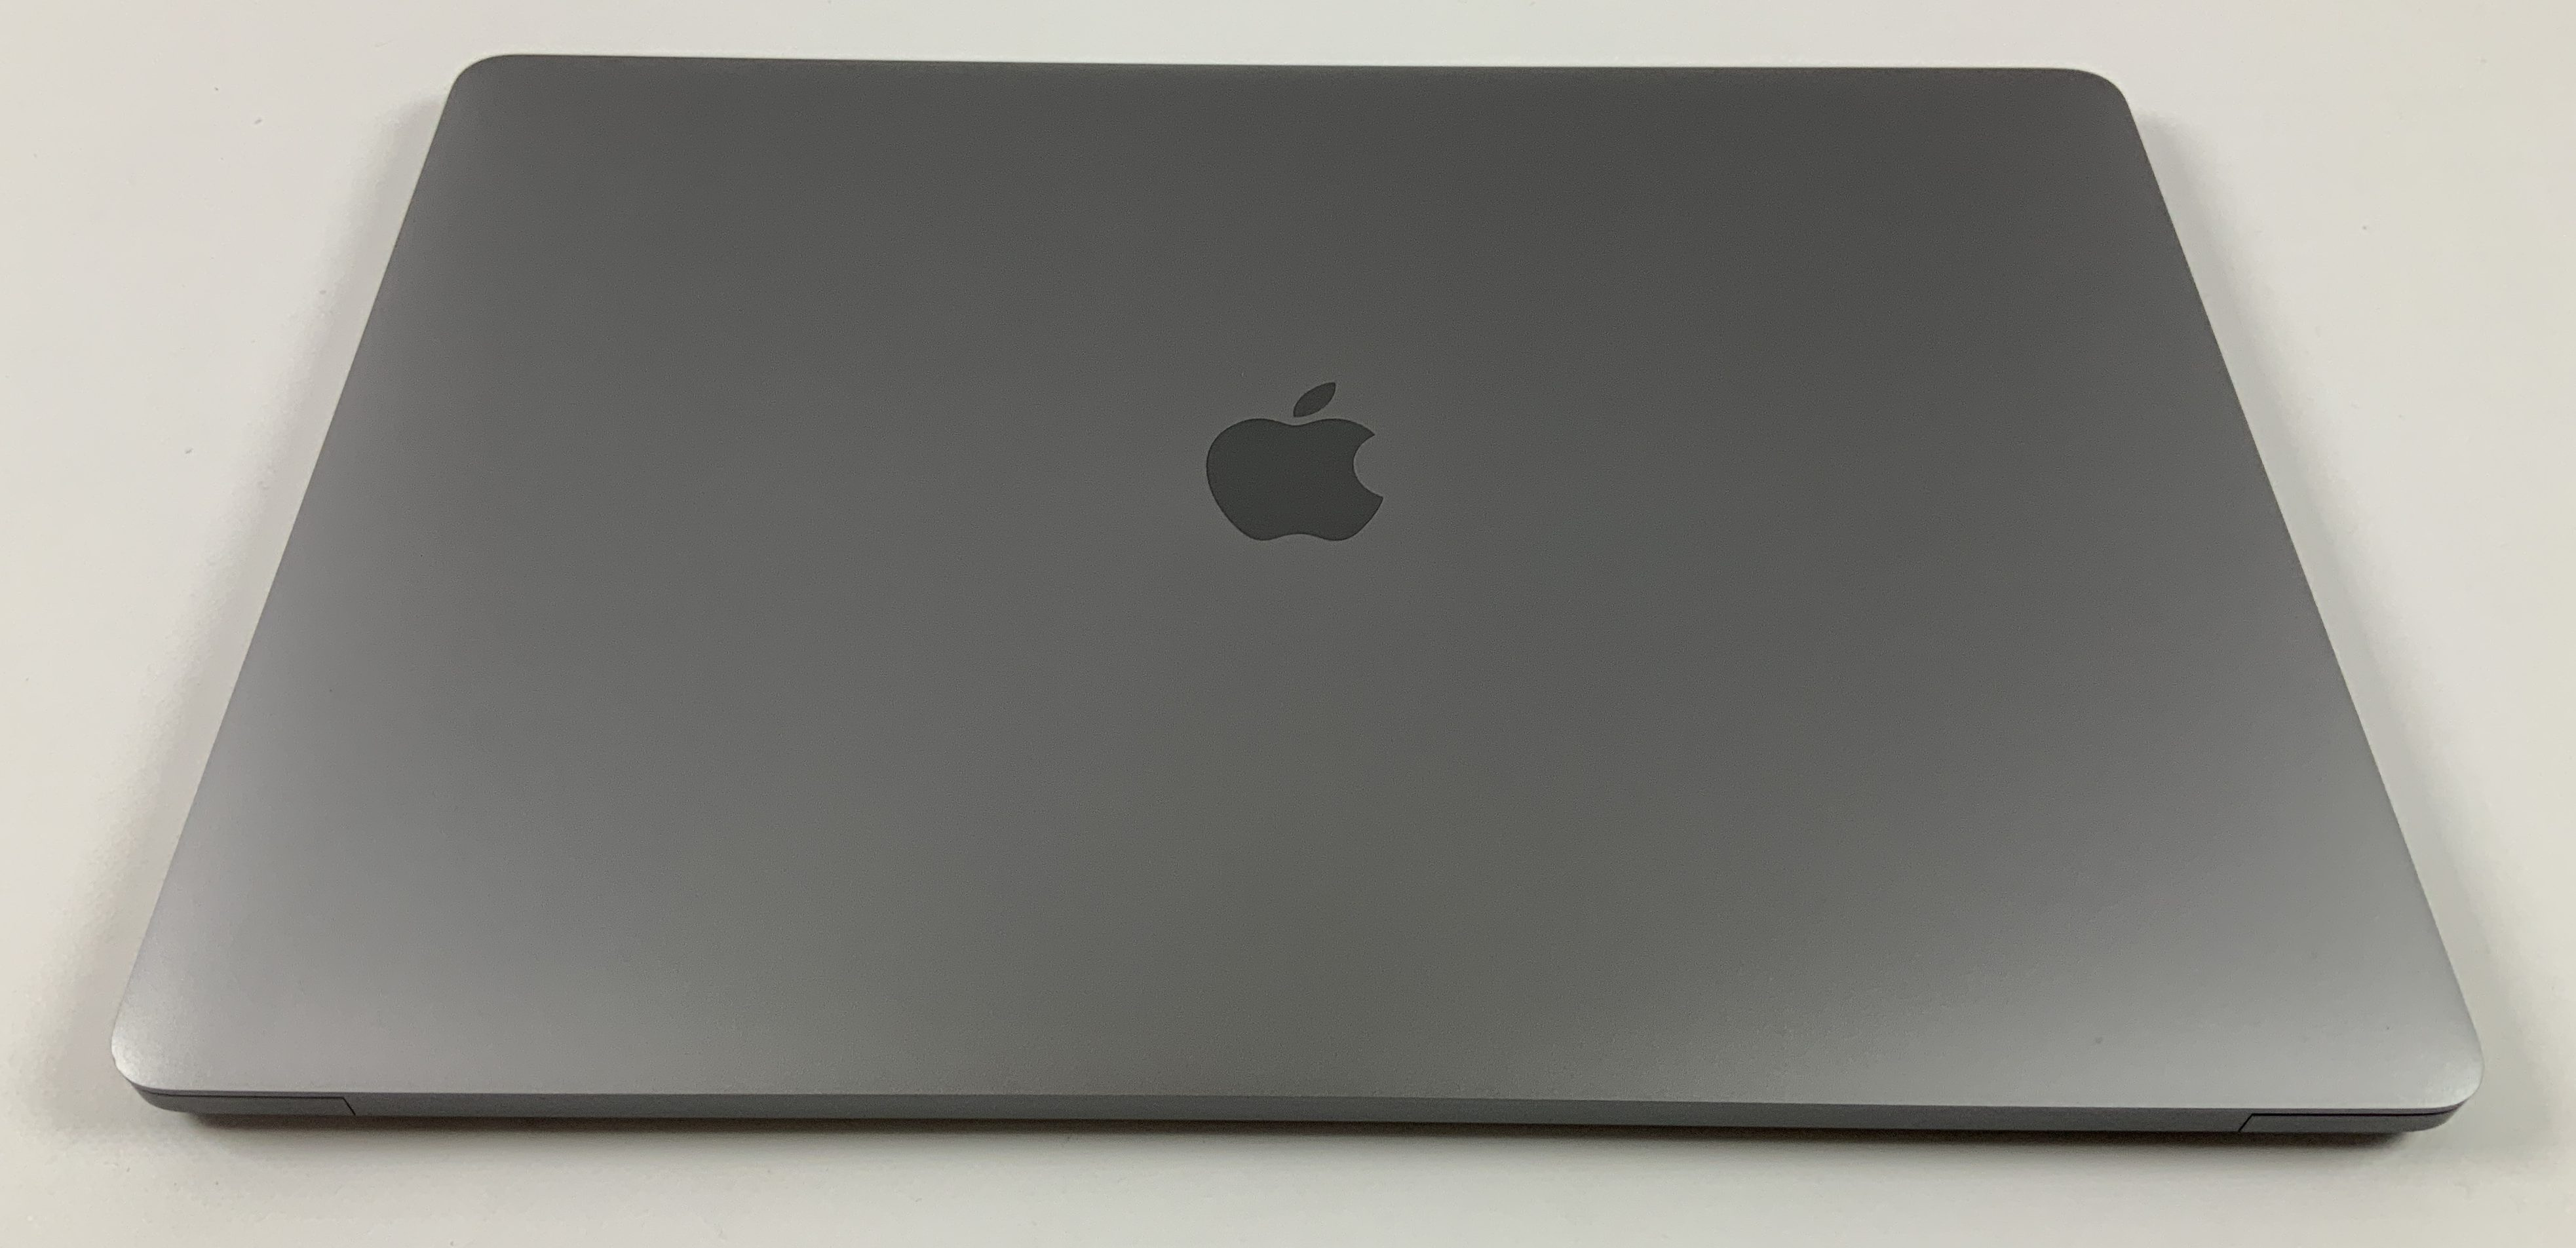 "MacBook Pro 15"" Touch Bar Late 2016 (Intel Quad-Core i7 2.6 GHz 16 GB RAM 256 GB SSD), Space Gray, Intel Quad-Core i7 2.6 GHz, 16 GB RAM, 256 GB SSD, obraz 2"